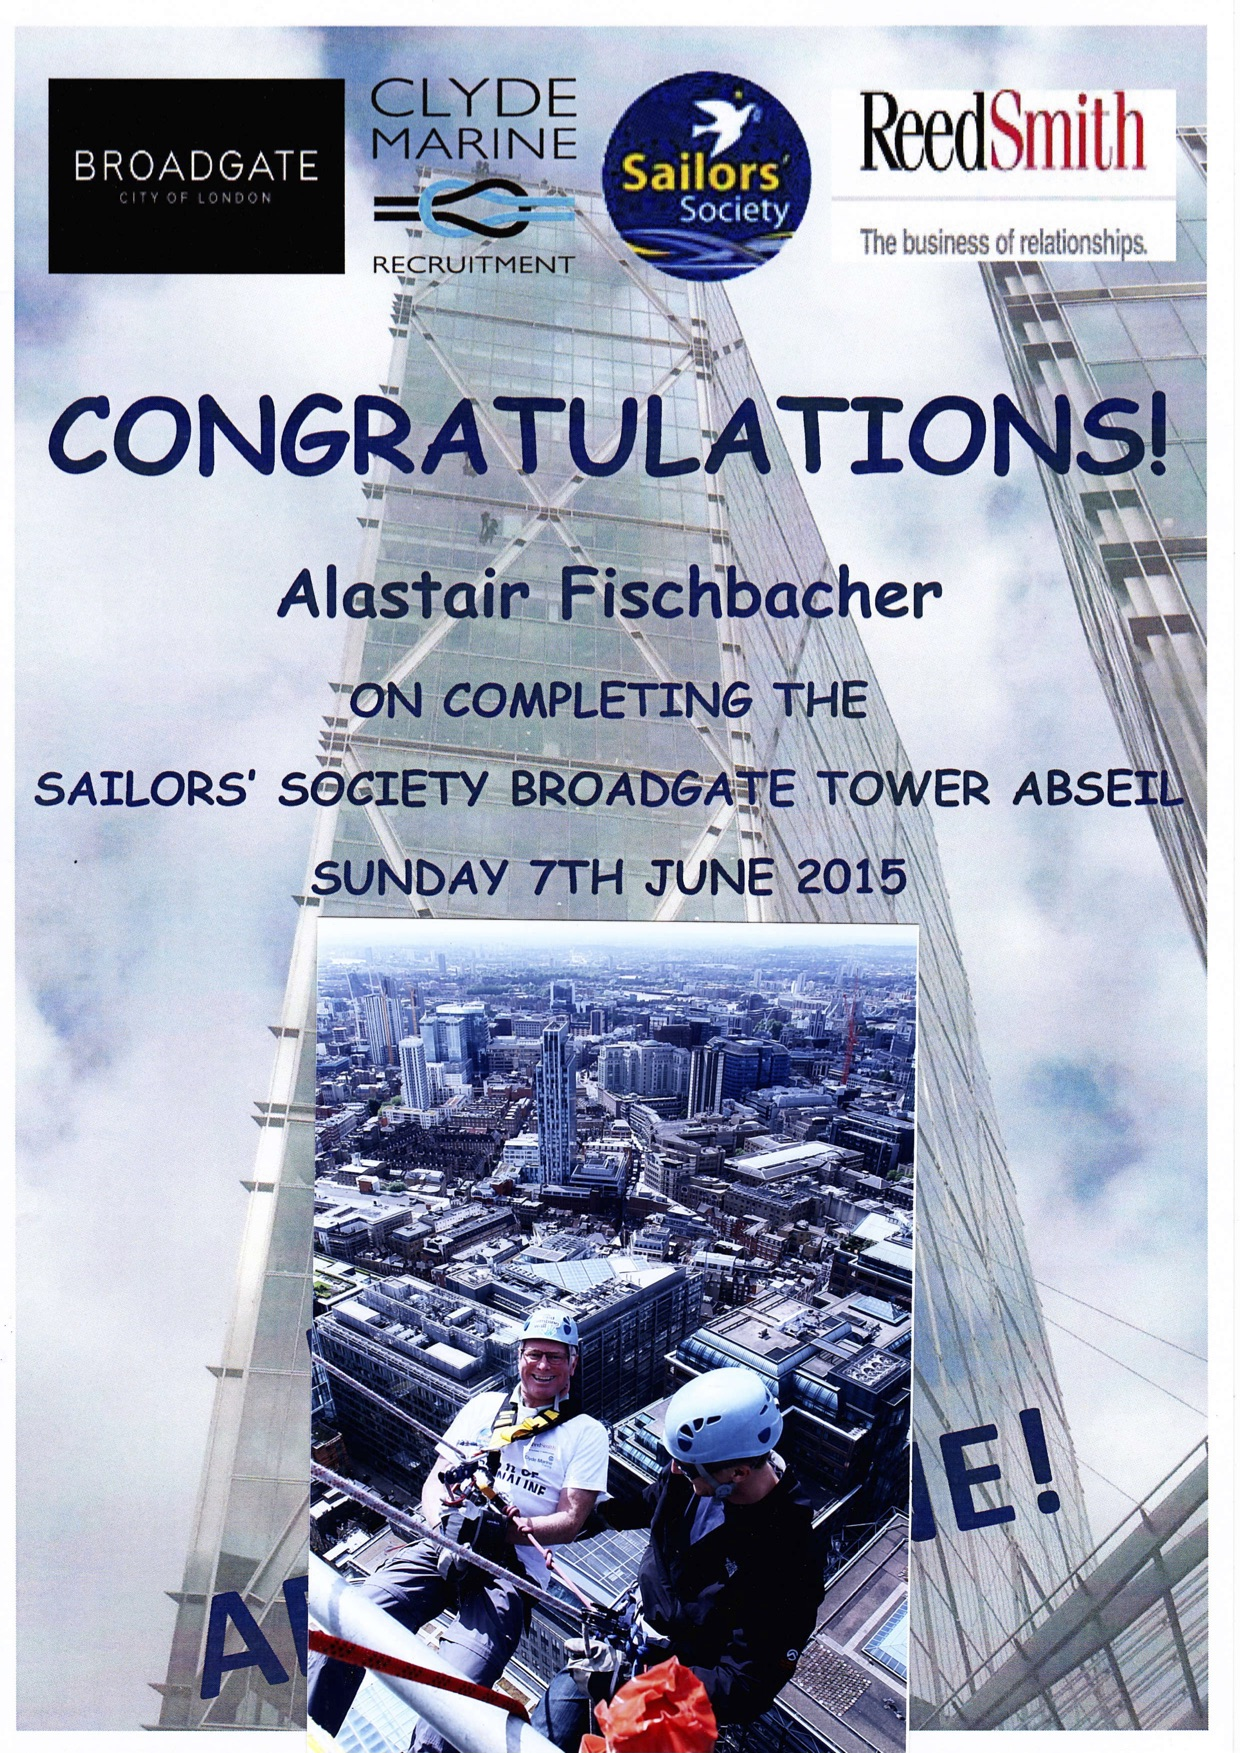 Alastair Fischbacher is fundraising for Sailors' Society